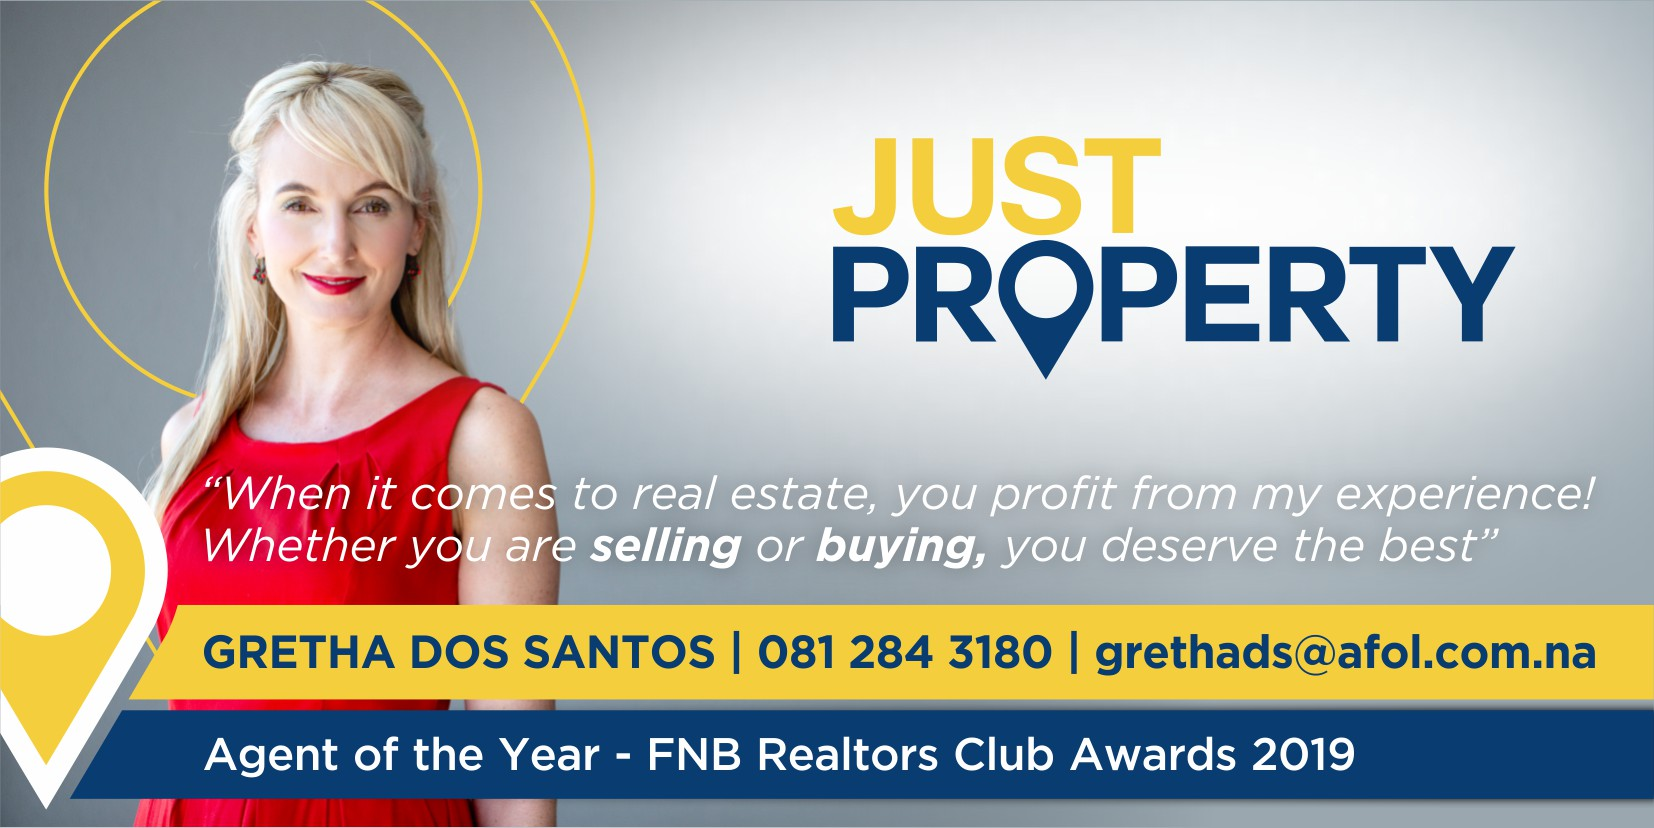 Just Property - Gretha Dos Santos